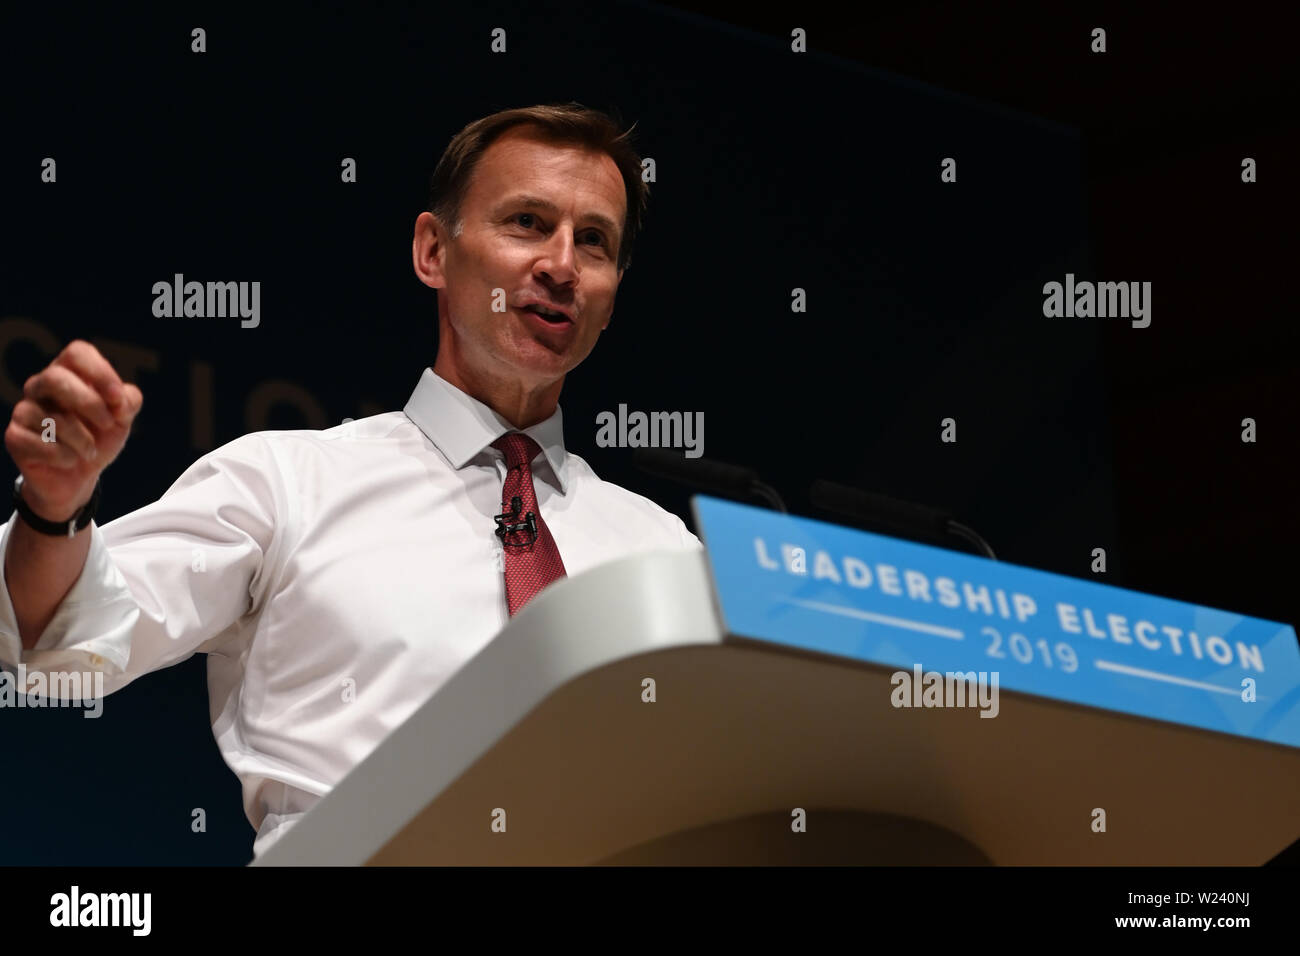 Perth, Scotland, United Kingdom, 05, July, 2019. Conservative Party leadership Jeremy Hunt addresses a leadership election hustings for party members. © Ken Jack / Alamy Live News - Stock Image